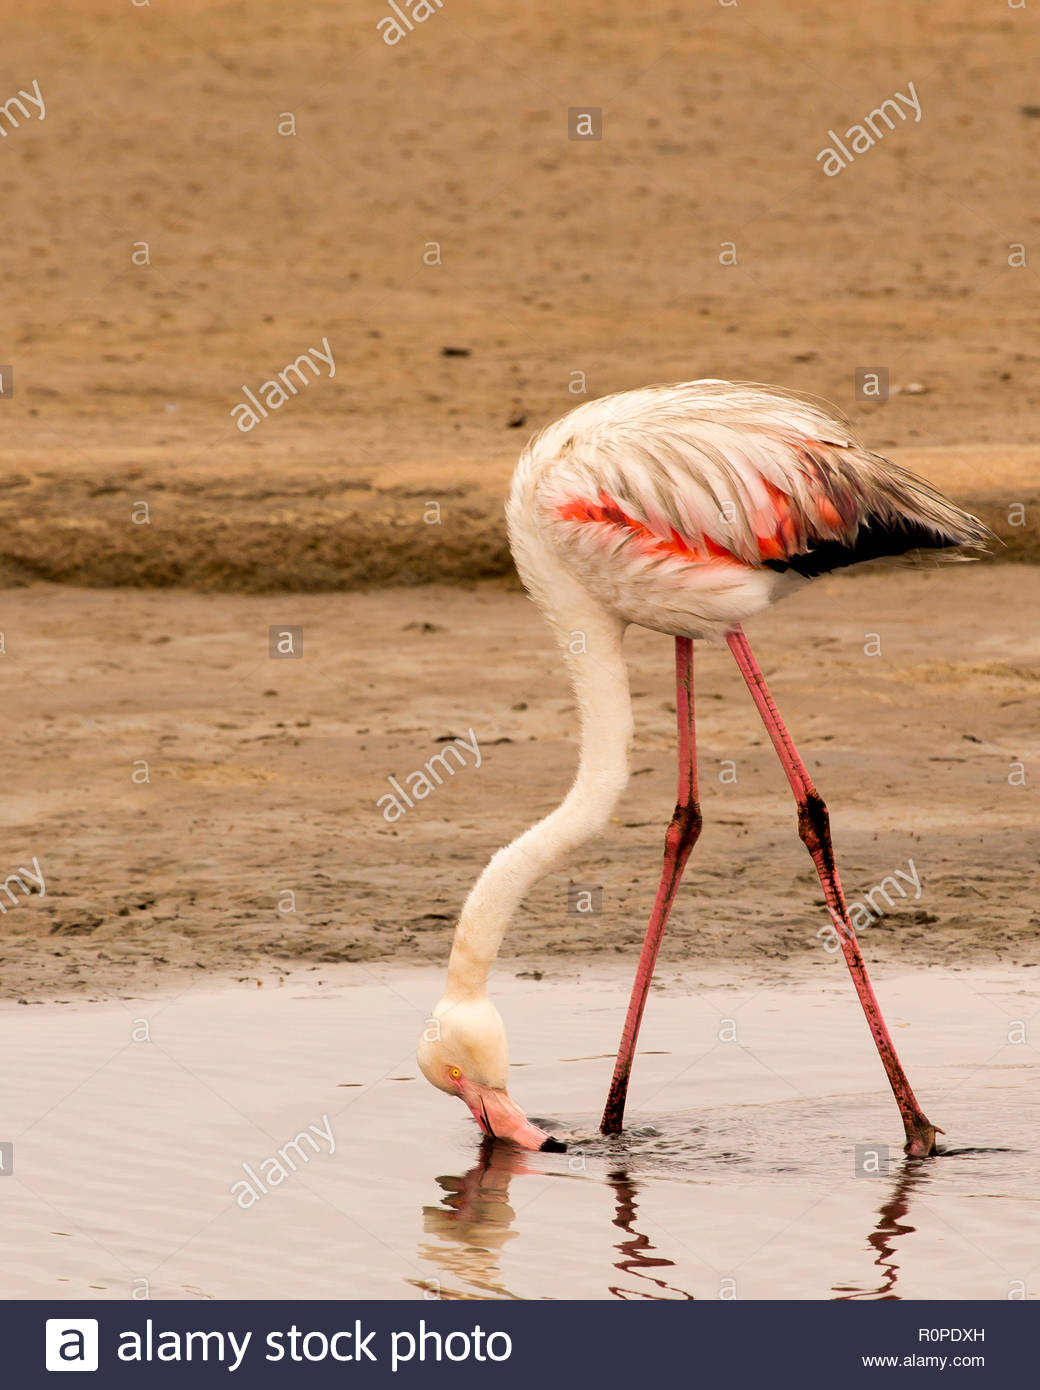 greater flamingo bends over to skim the water with its bill - Stock Image